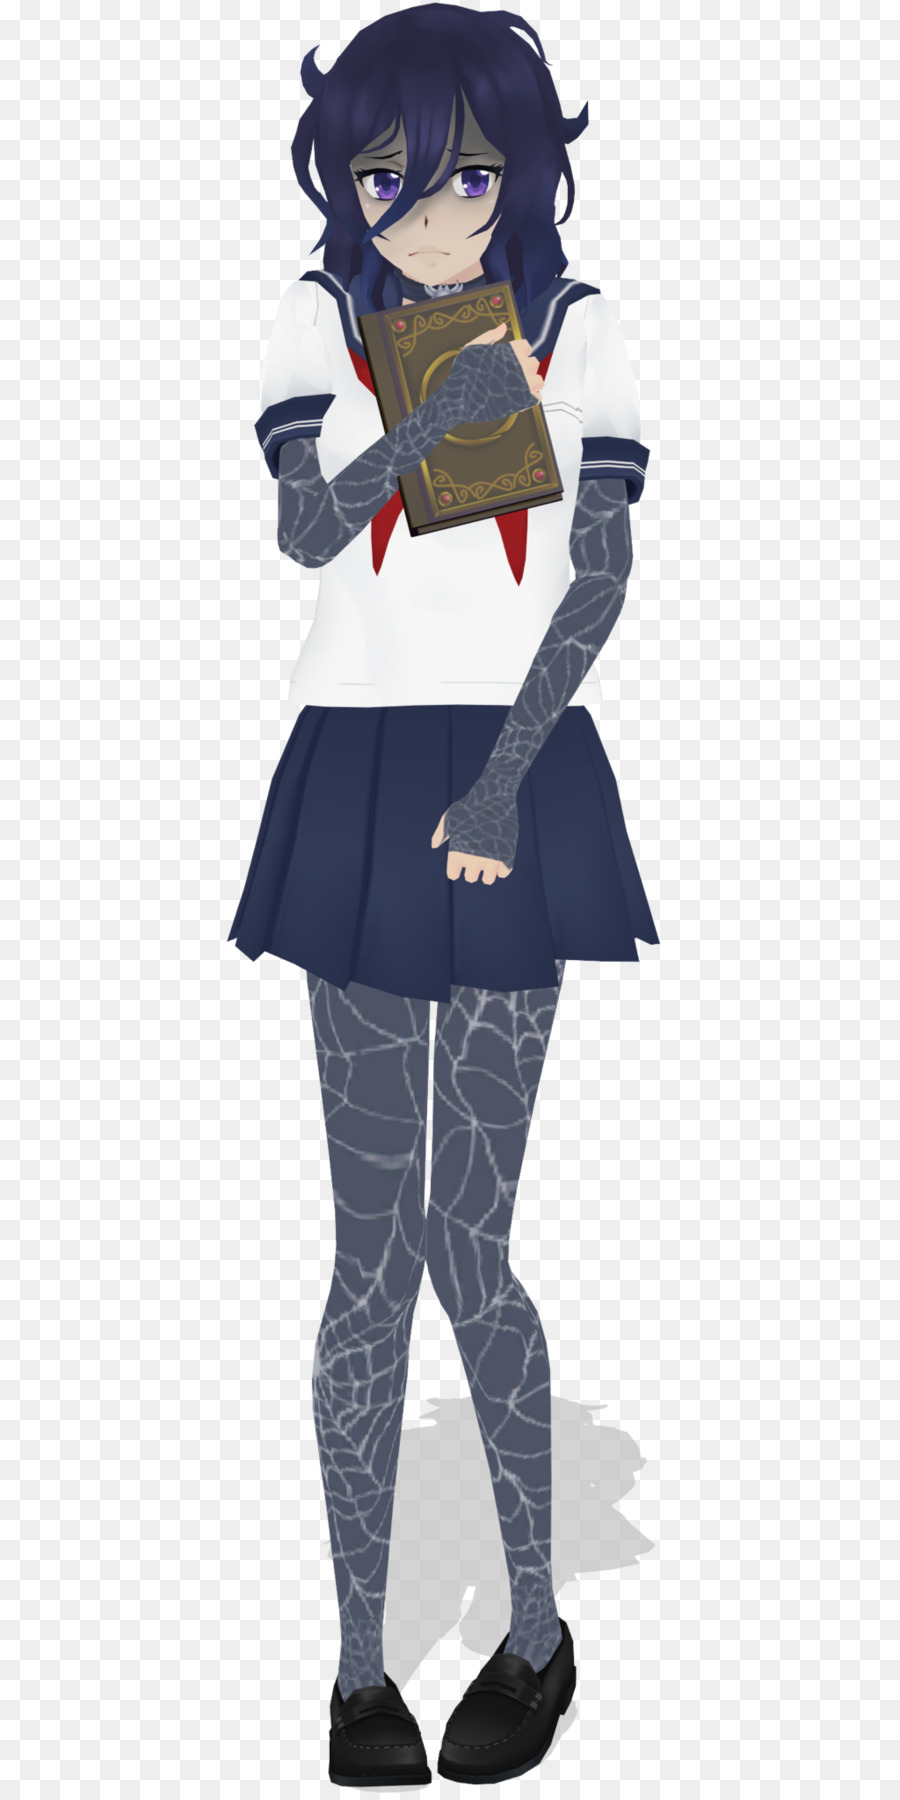 Coloring book Yandere Simulator Character - physics design png ...